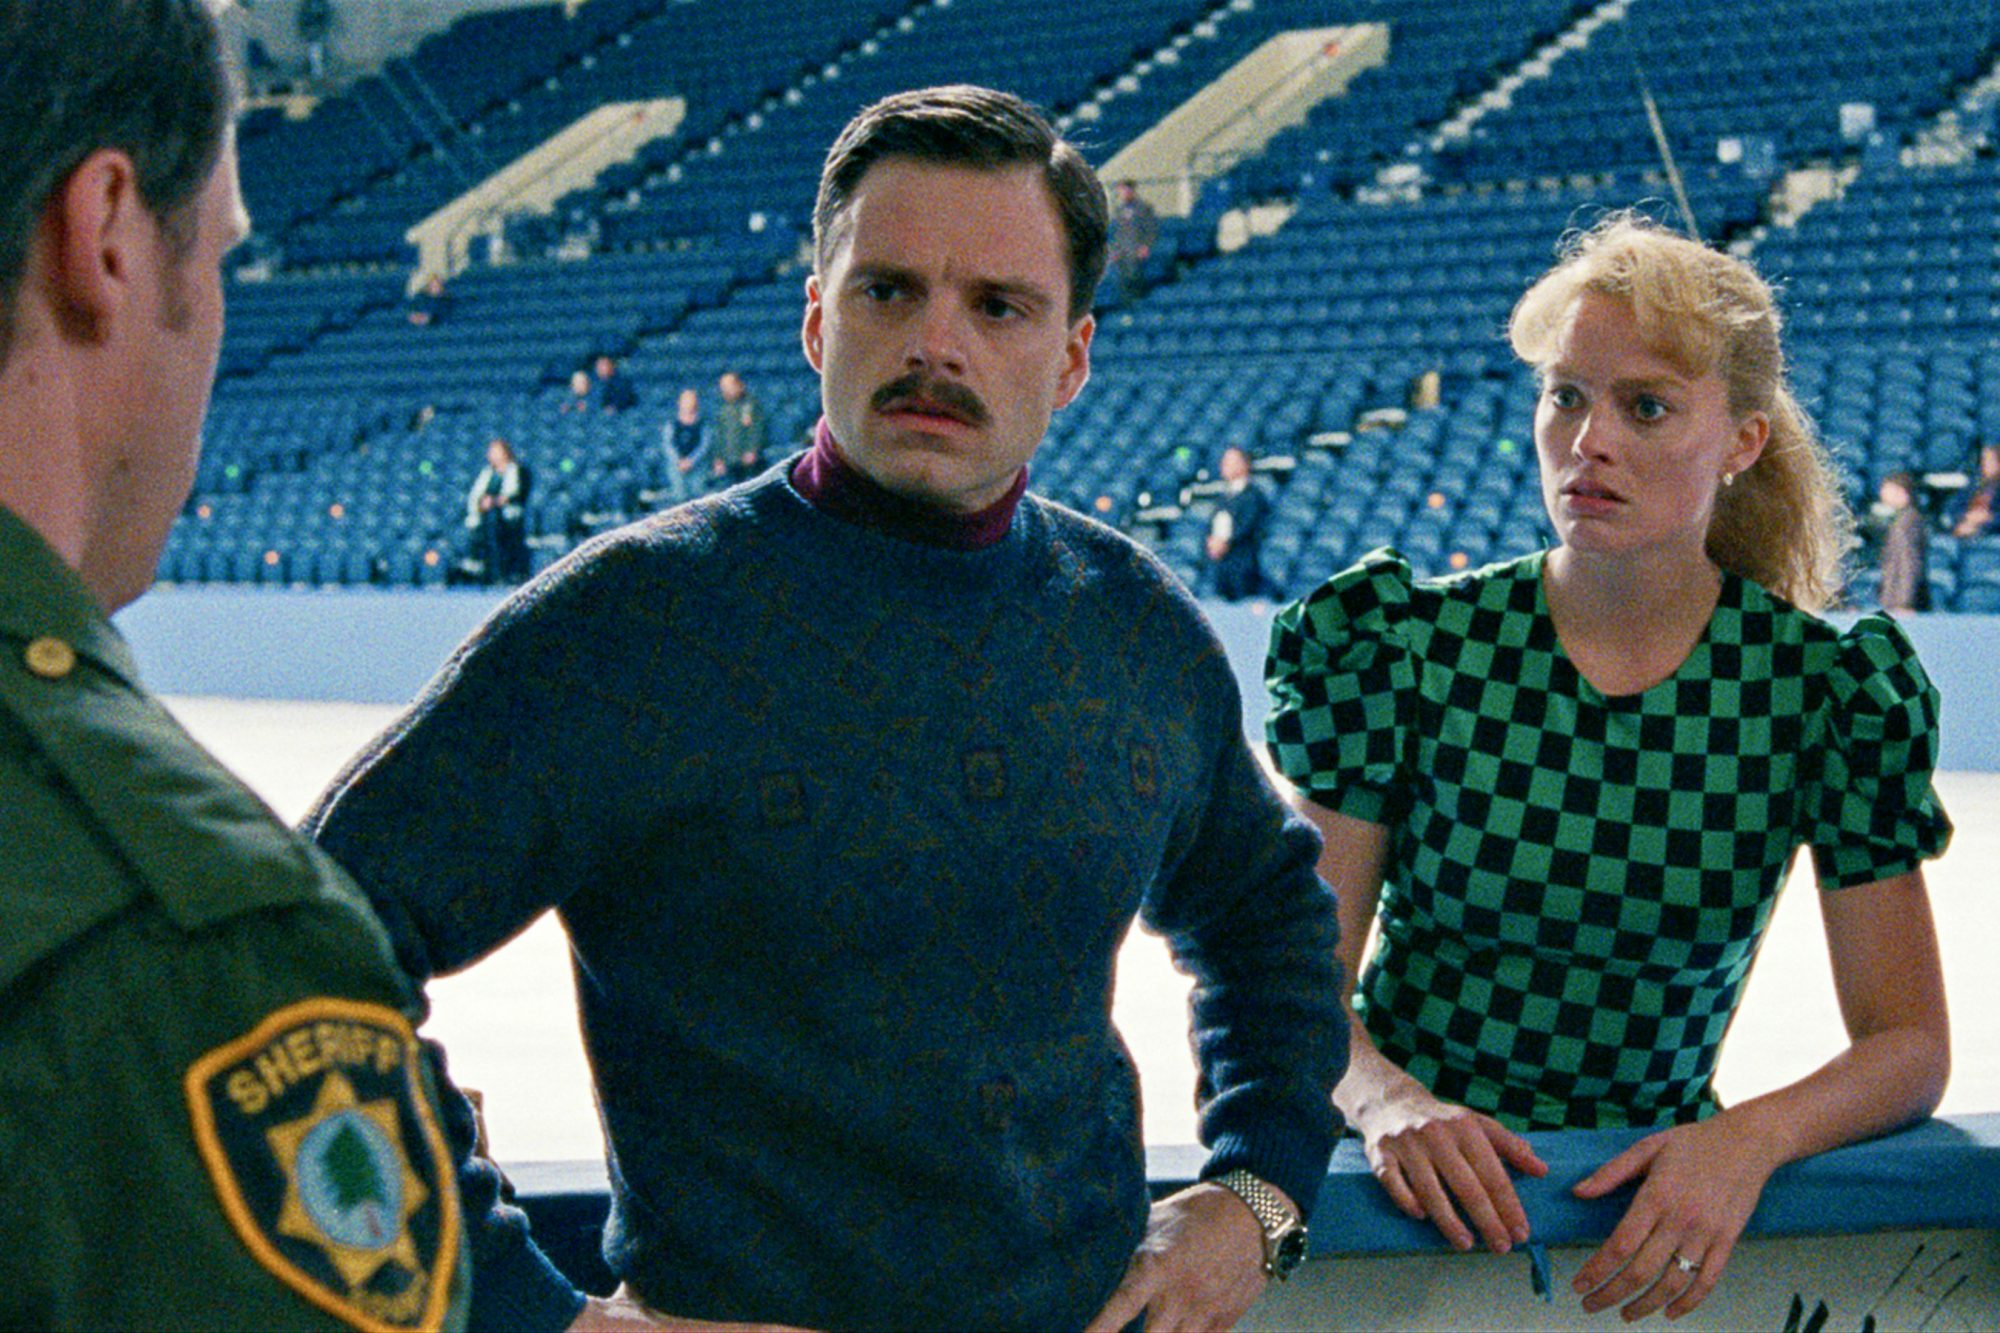 SNUB: I, Tonya for Best Picture